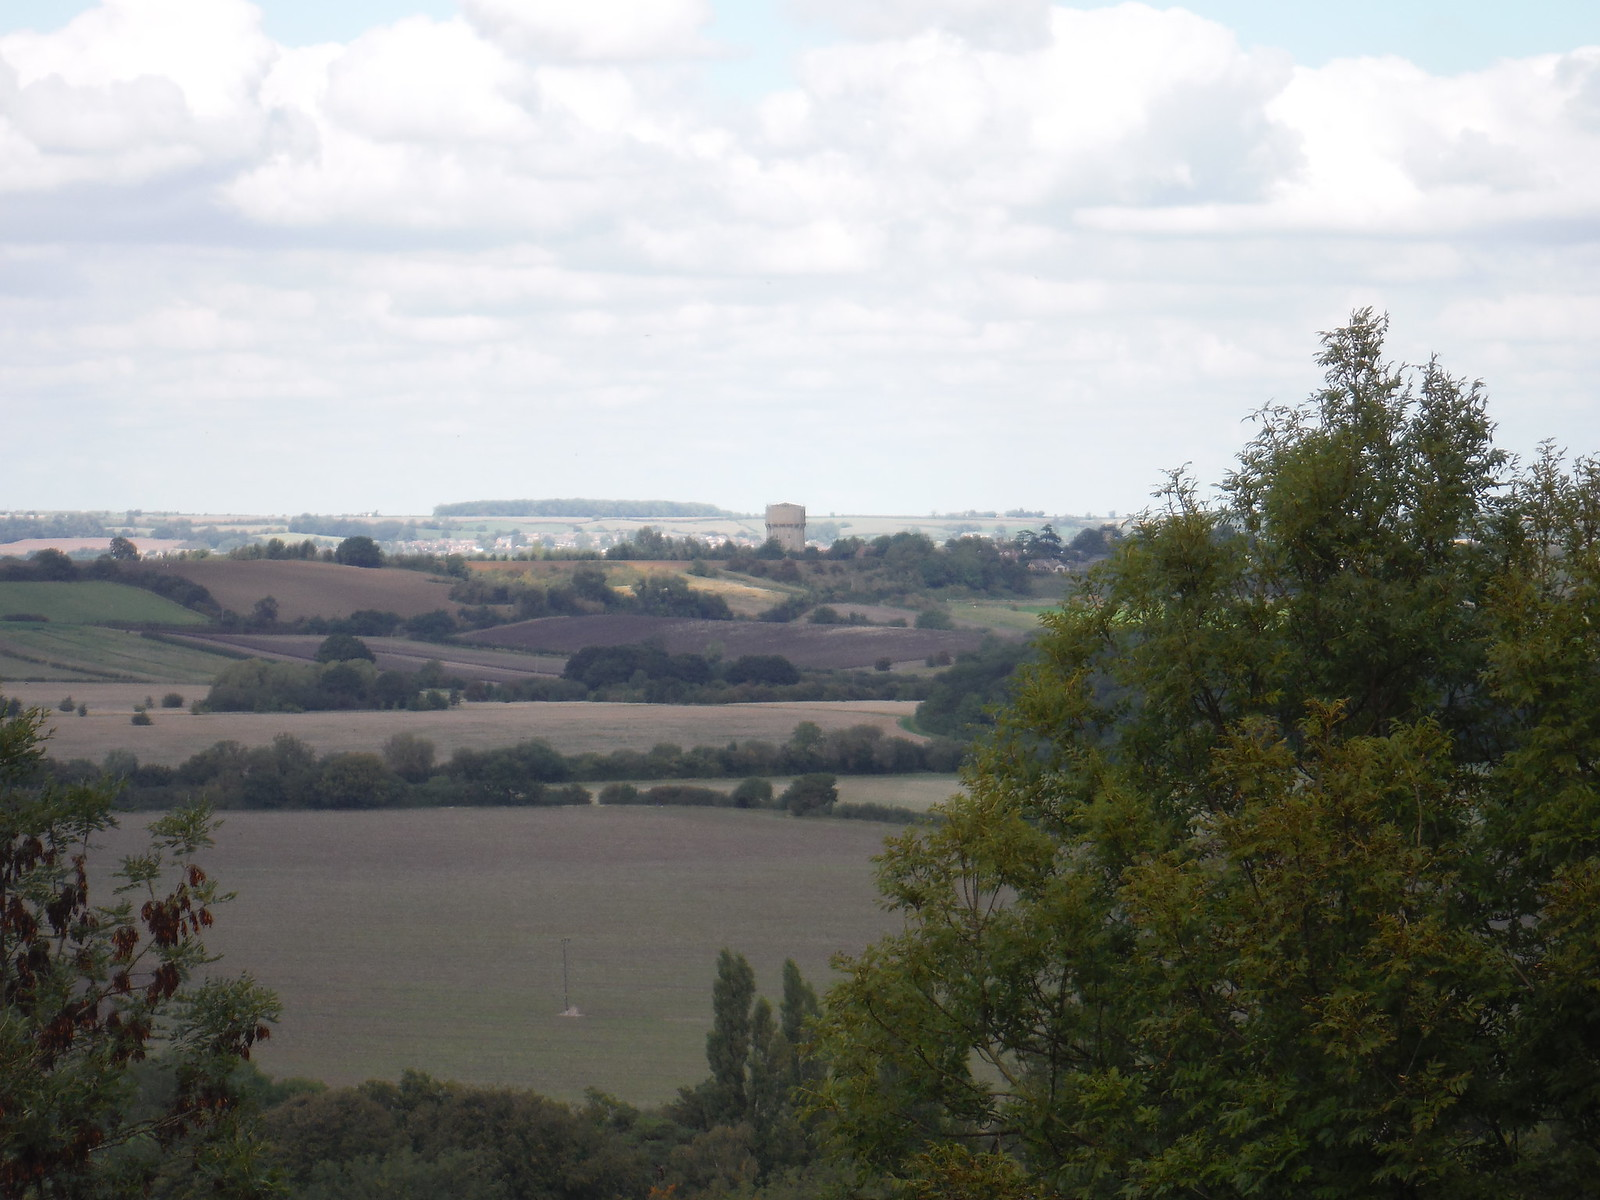 Pulloxhill Water Tower from Sharpenhoe Hillfort Site SWC Walk 230 Harlington to Flitwick